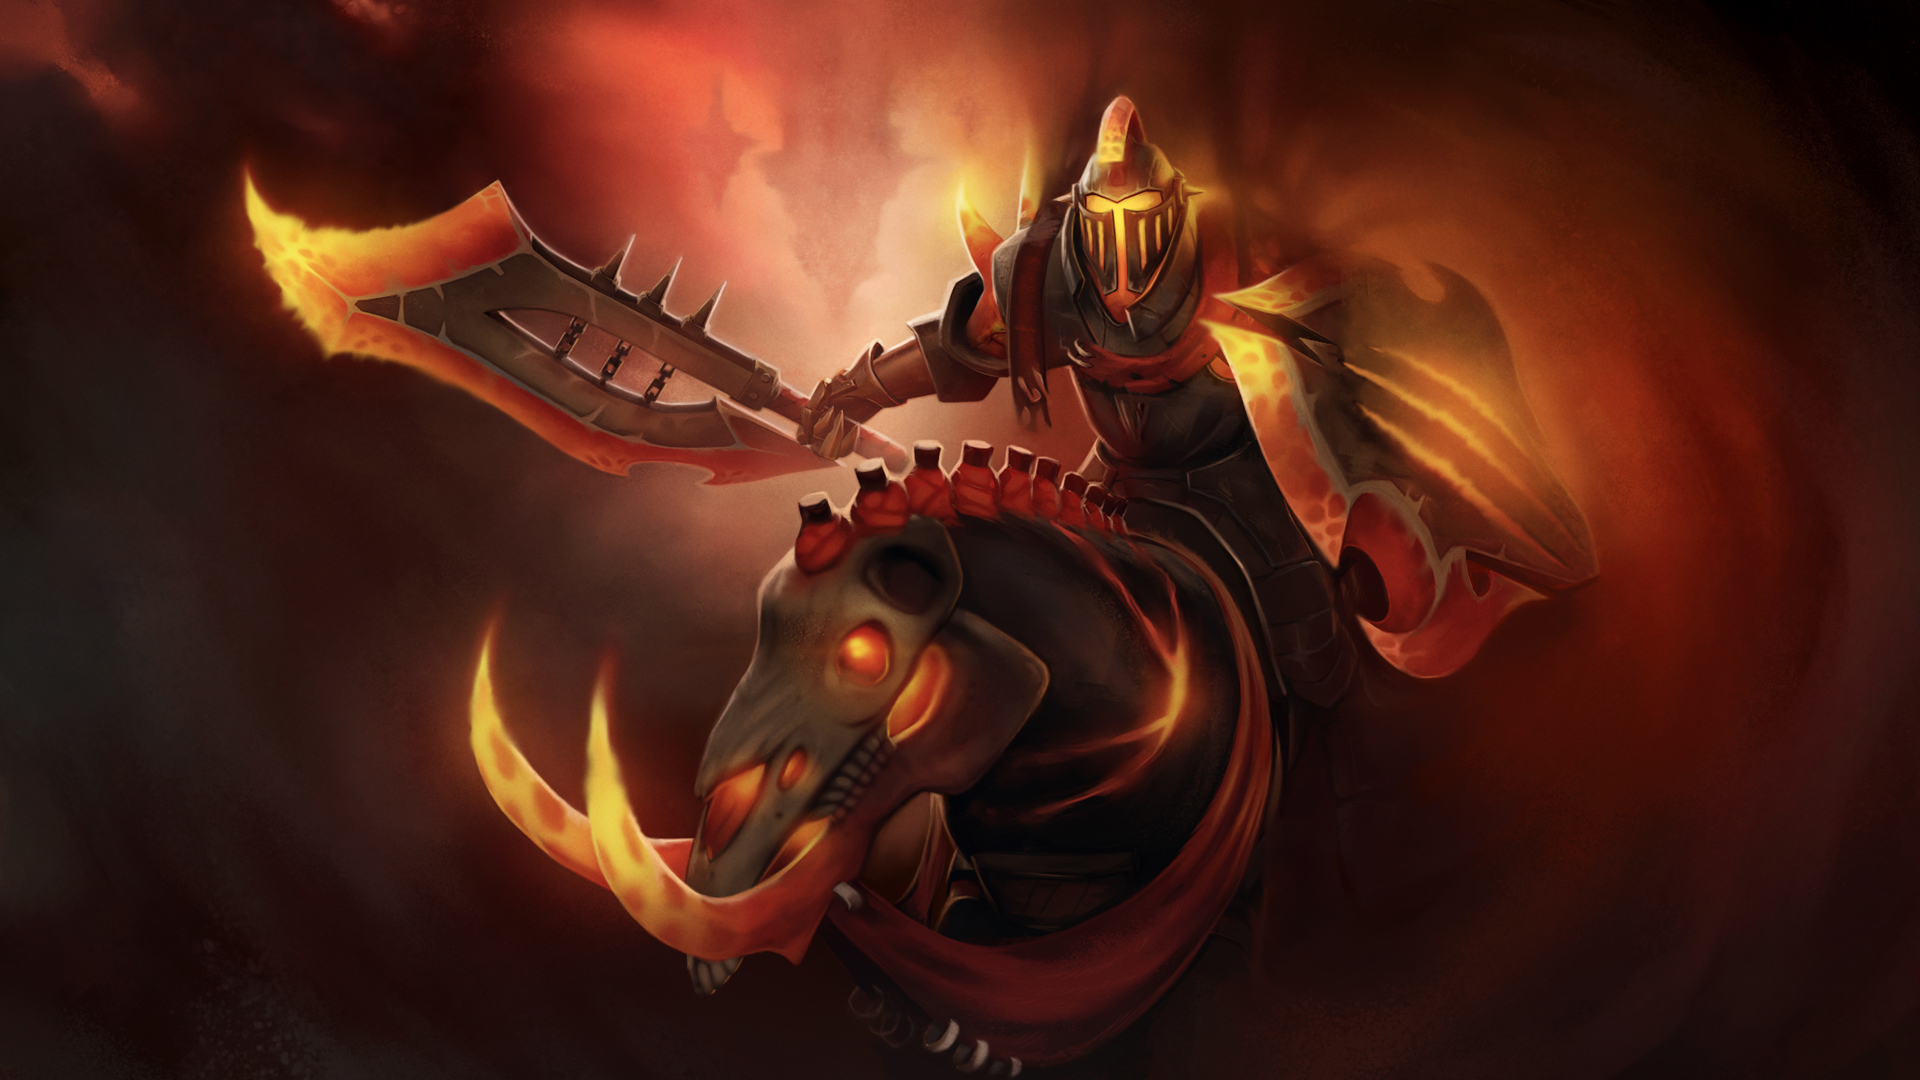 Chaos Knight Wallpapers Dota 2 HD Wallpapers #2